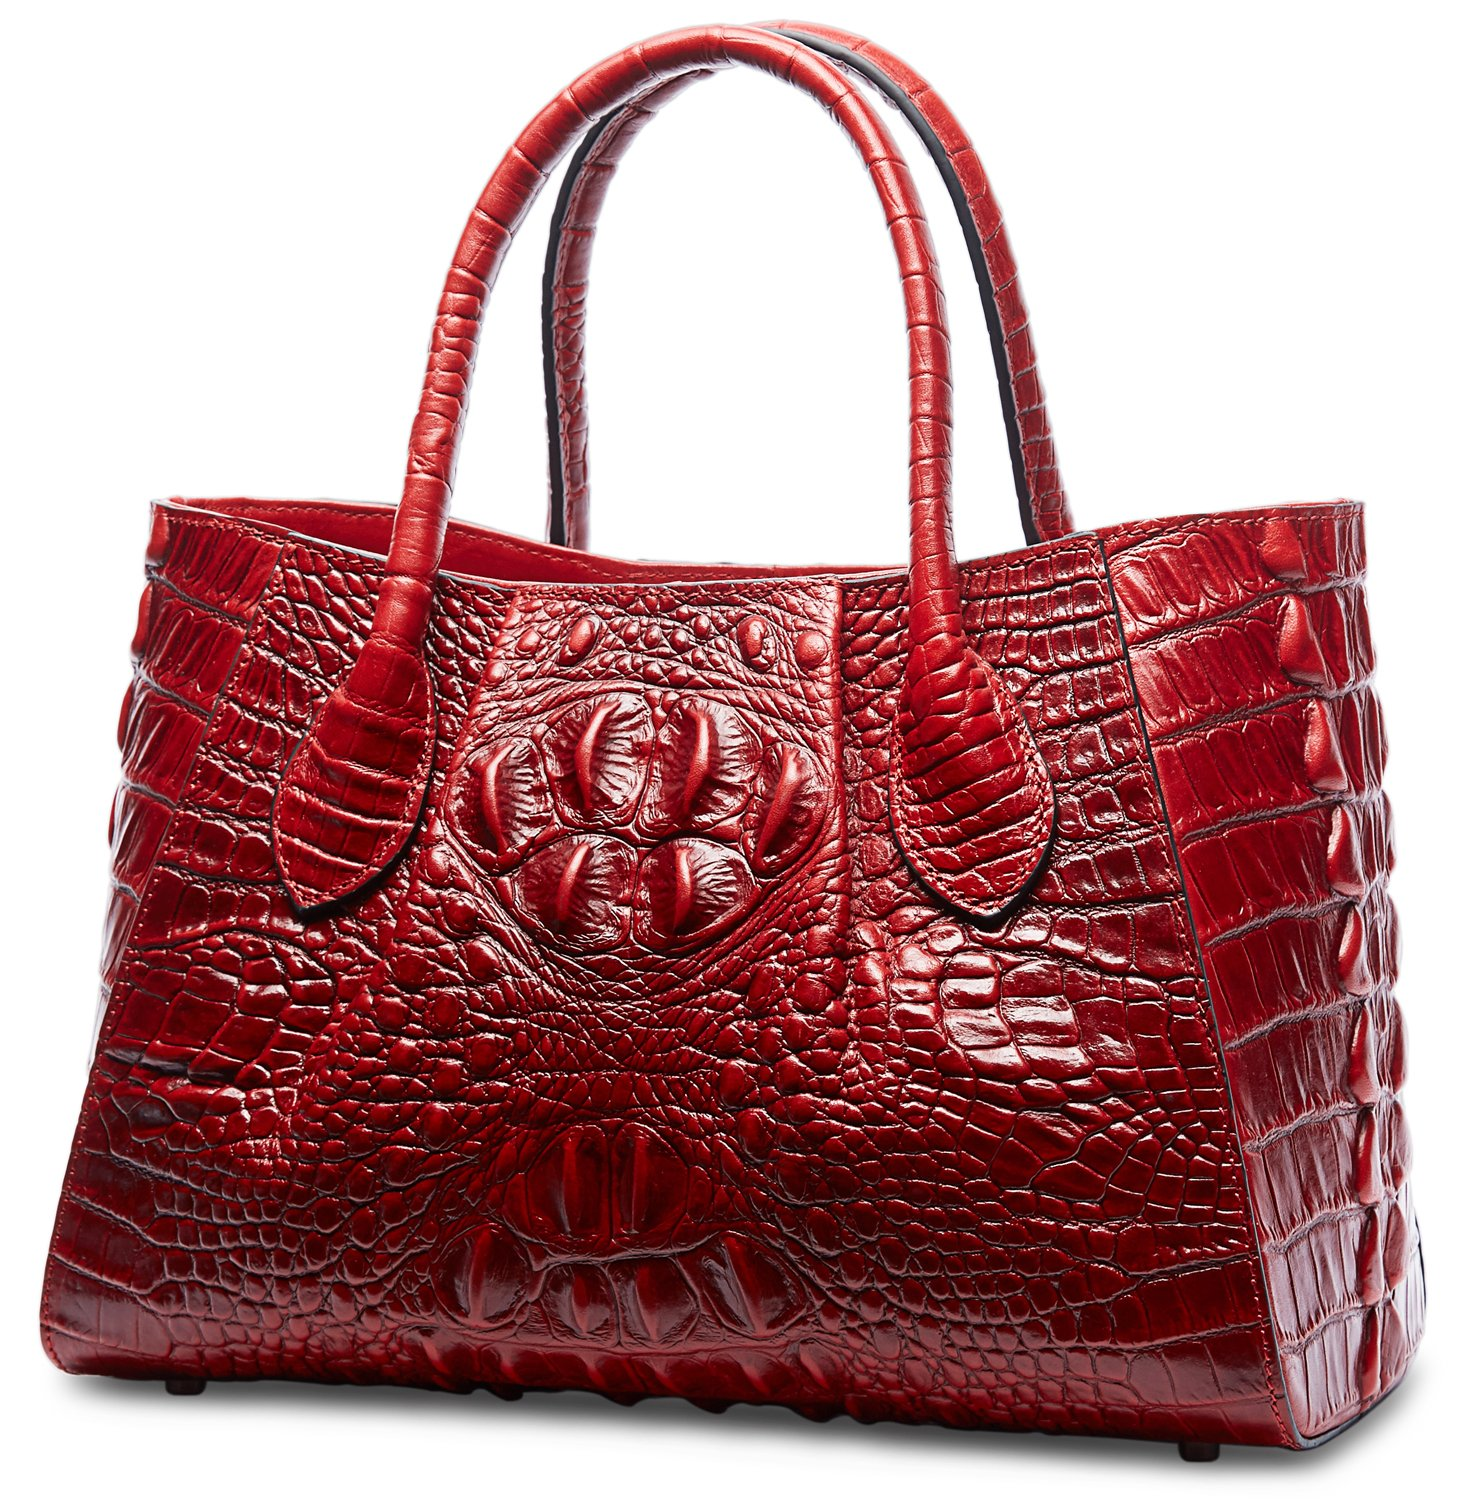 Buy Pifuren Designer Crocodile Top Handle Handbags Womens Genuine Leather  Tote Bags M1107 (New Red) Online at Low Prices in India - Amazon.in a077f4cca2bf3